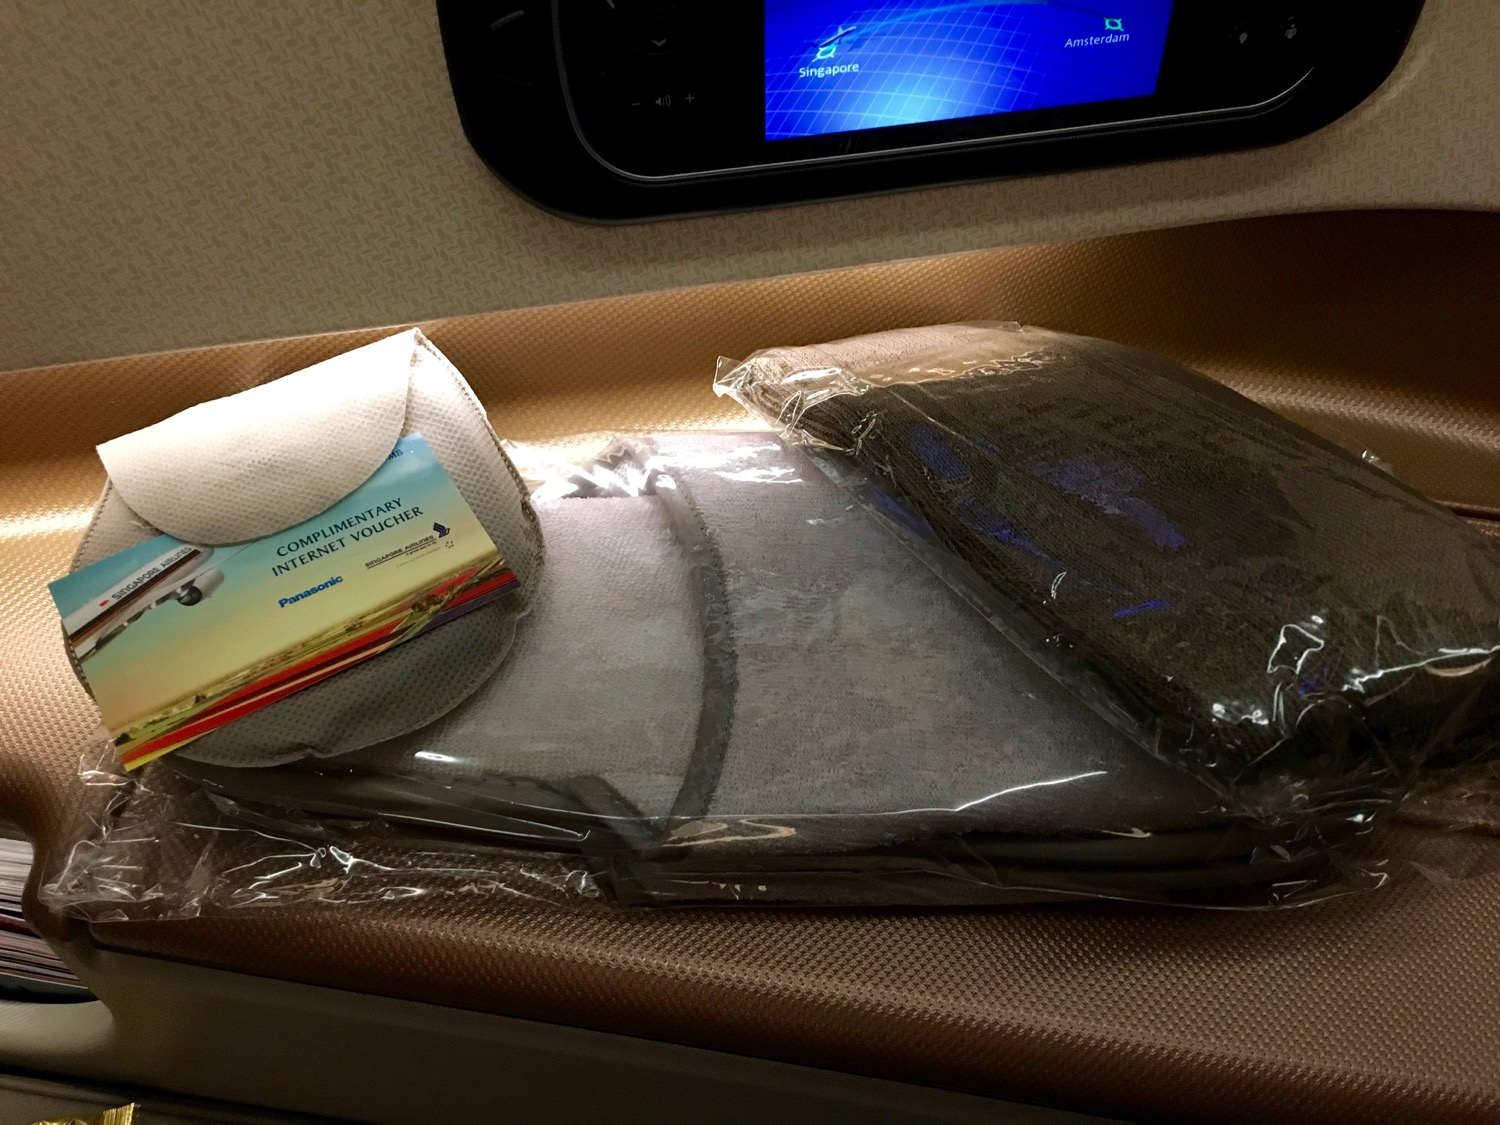 Singapore Airlines A350 Business Class Amenities - 1